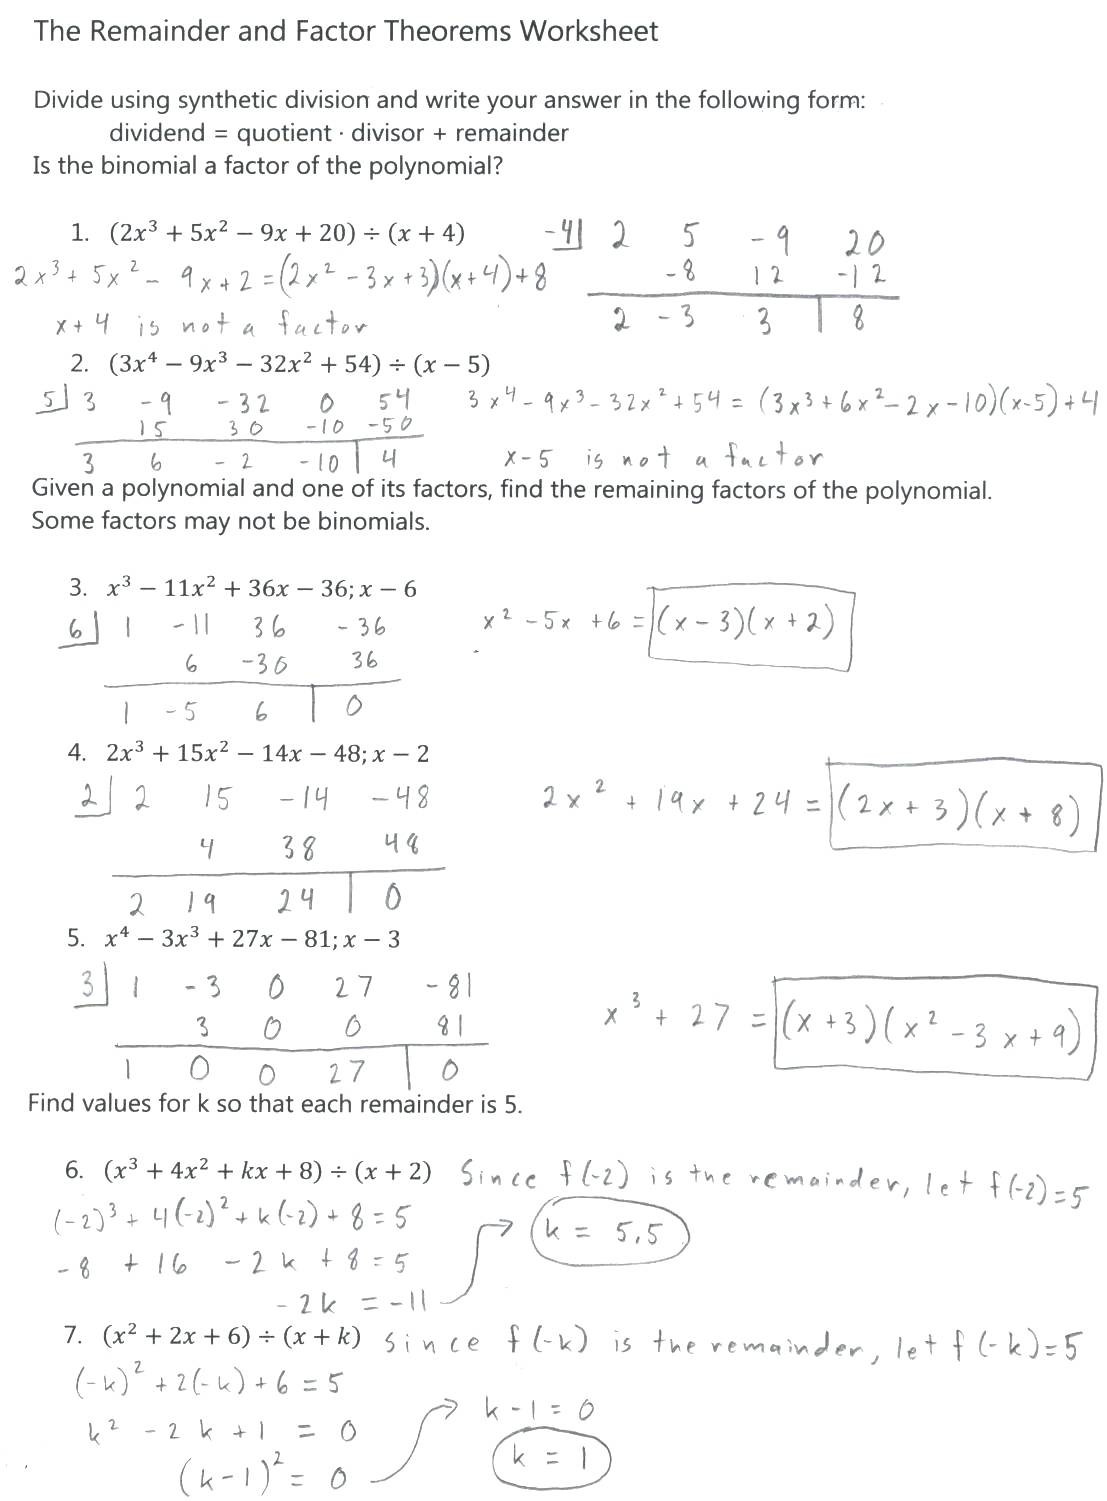 Factoring Polynomials Worksheet Answers Algebra 2 Factoring Worksheet with Answers